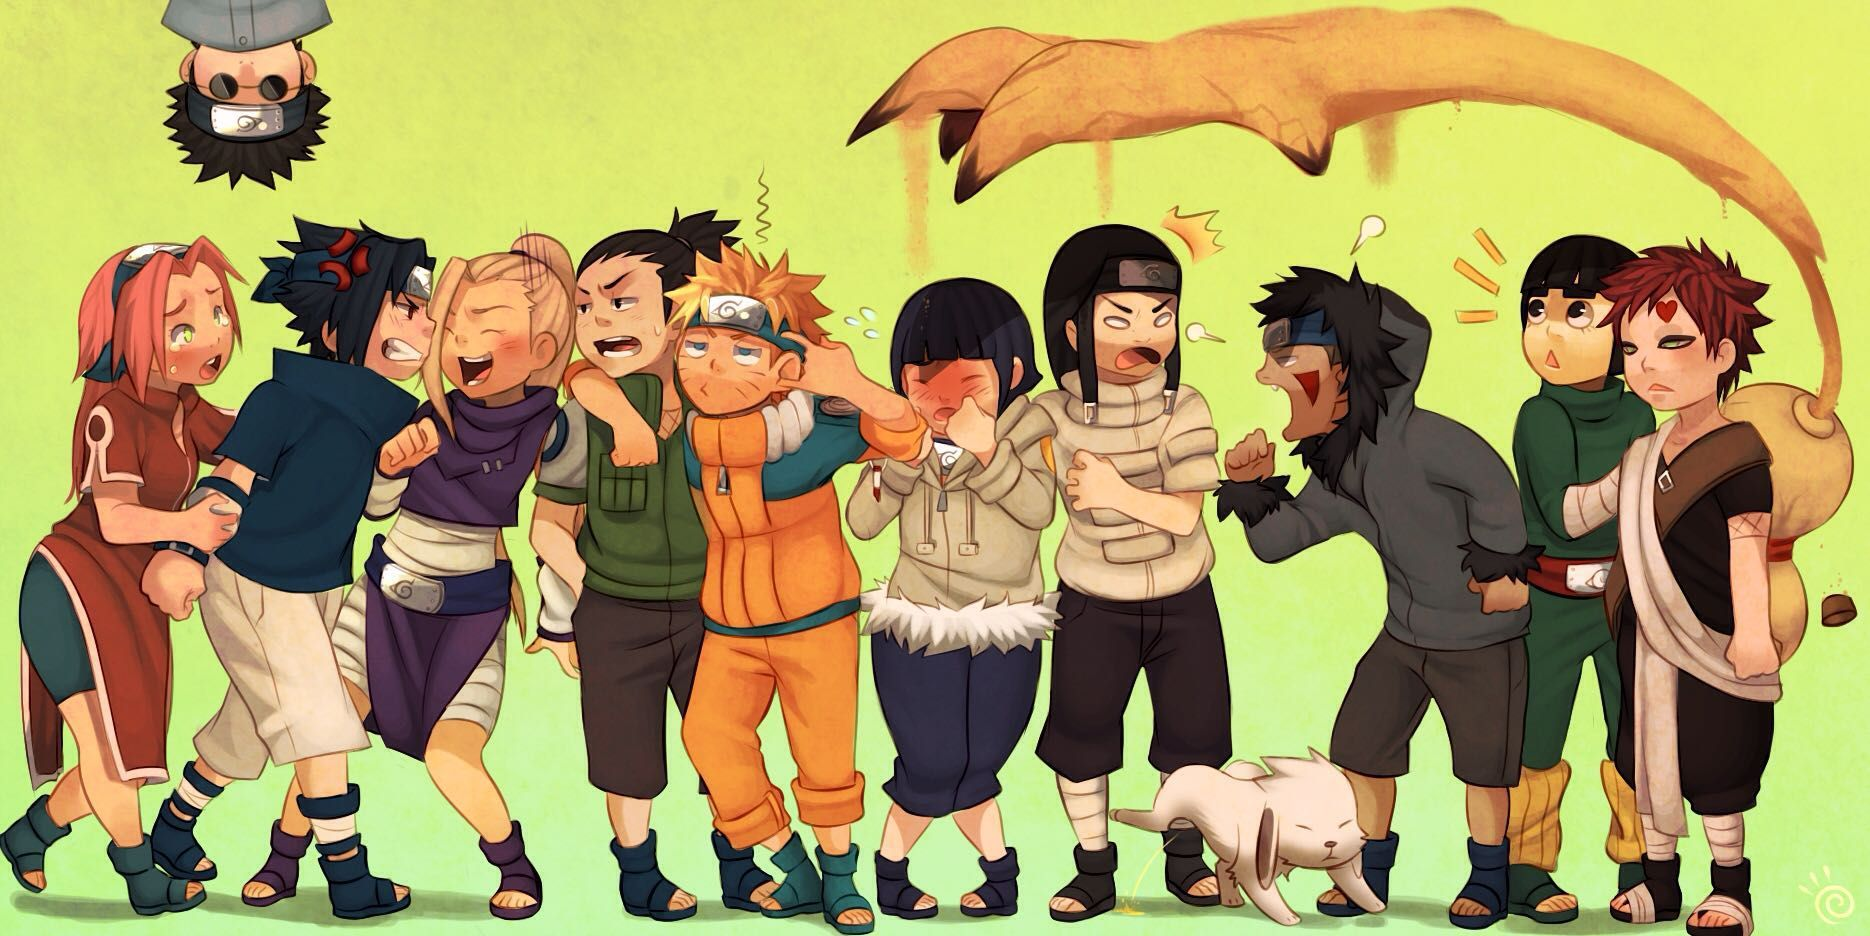 Lost - Naruto FanFic - The Chunin Exams | anime | Naruto